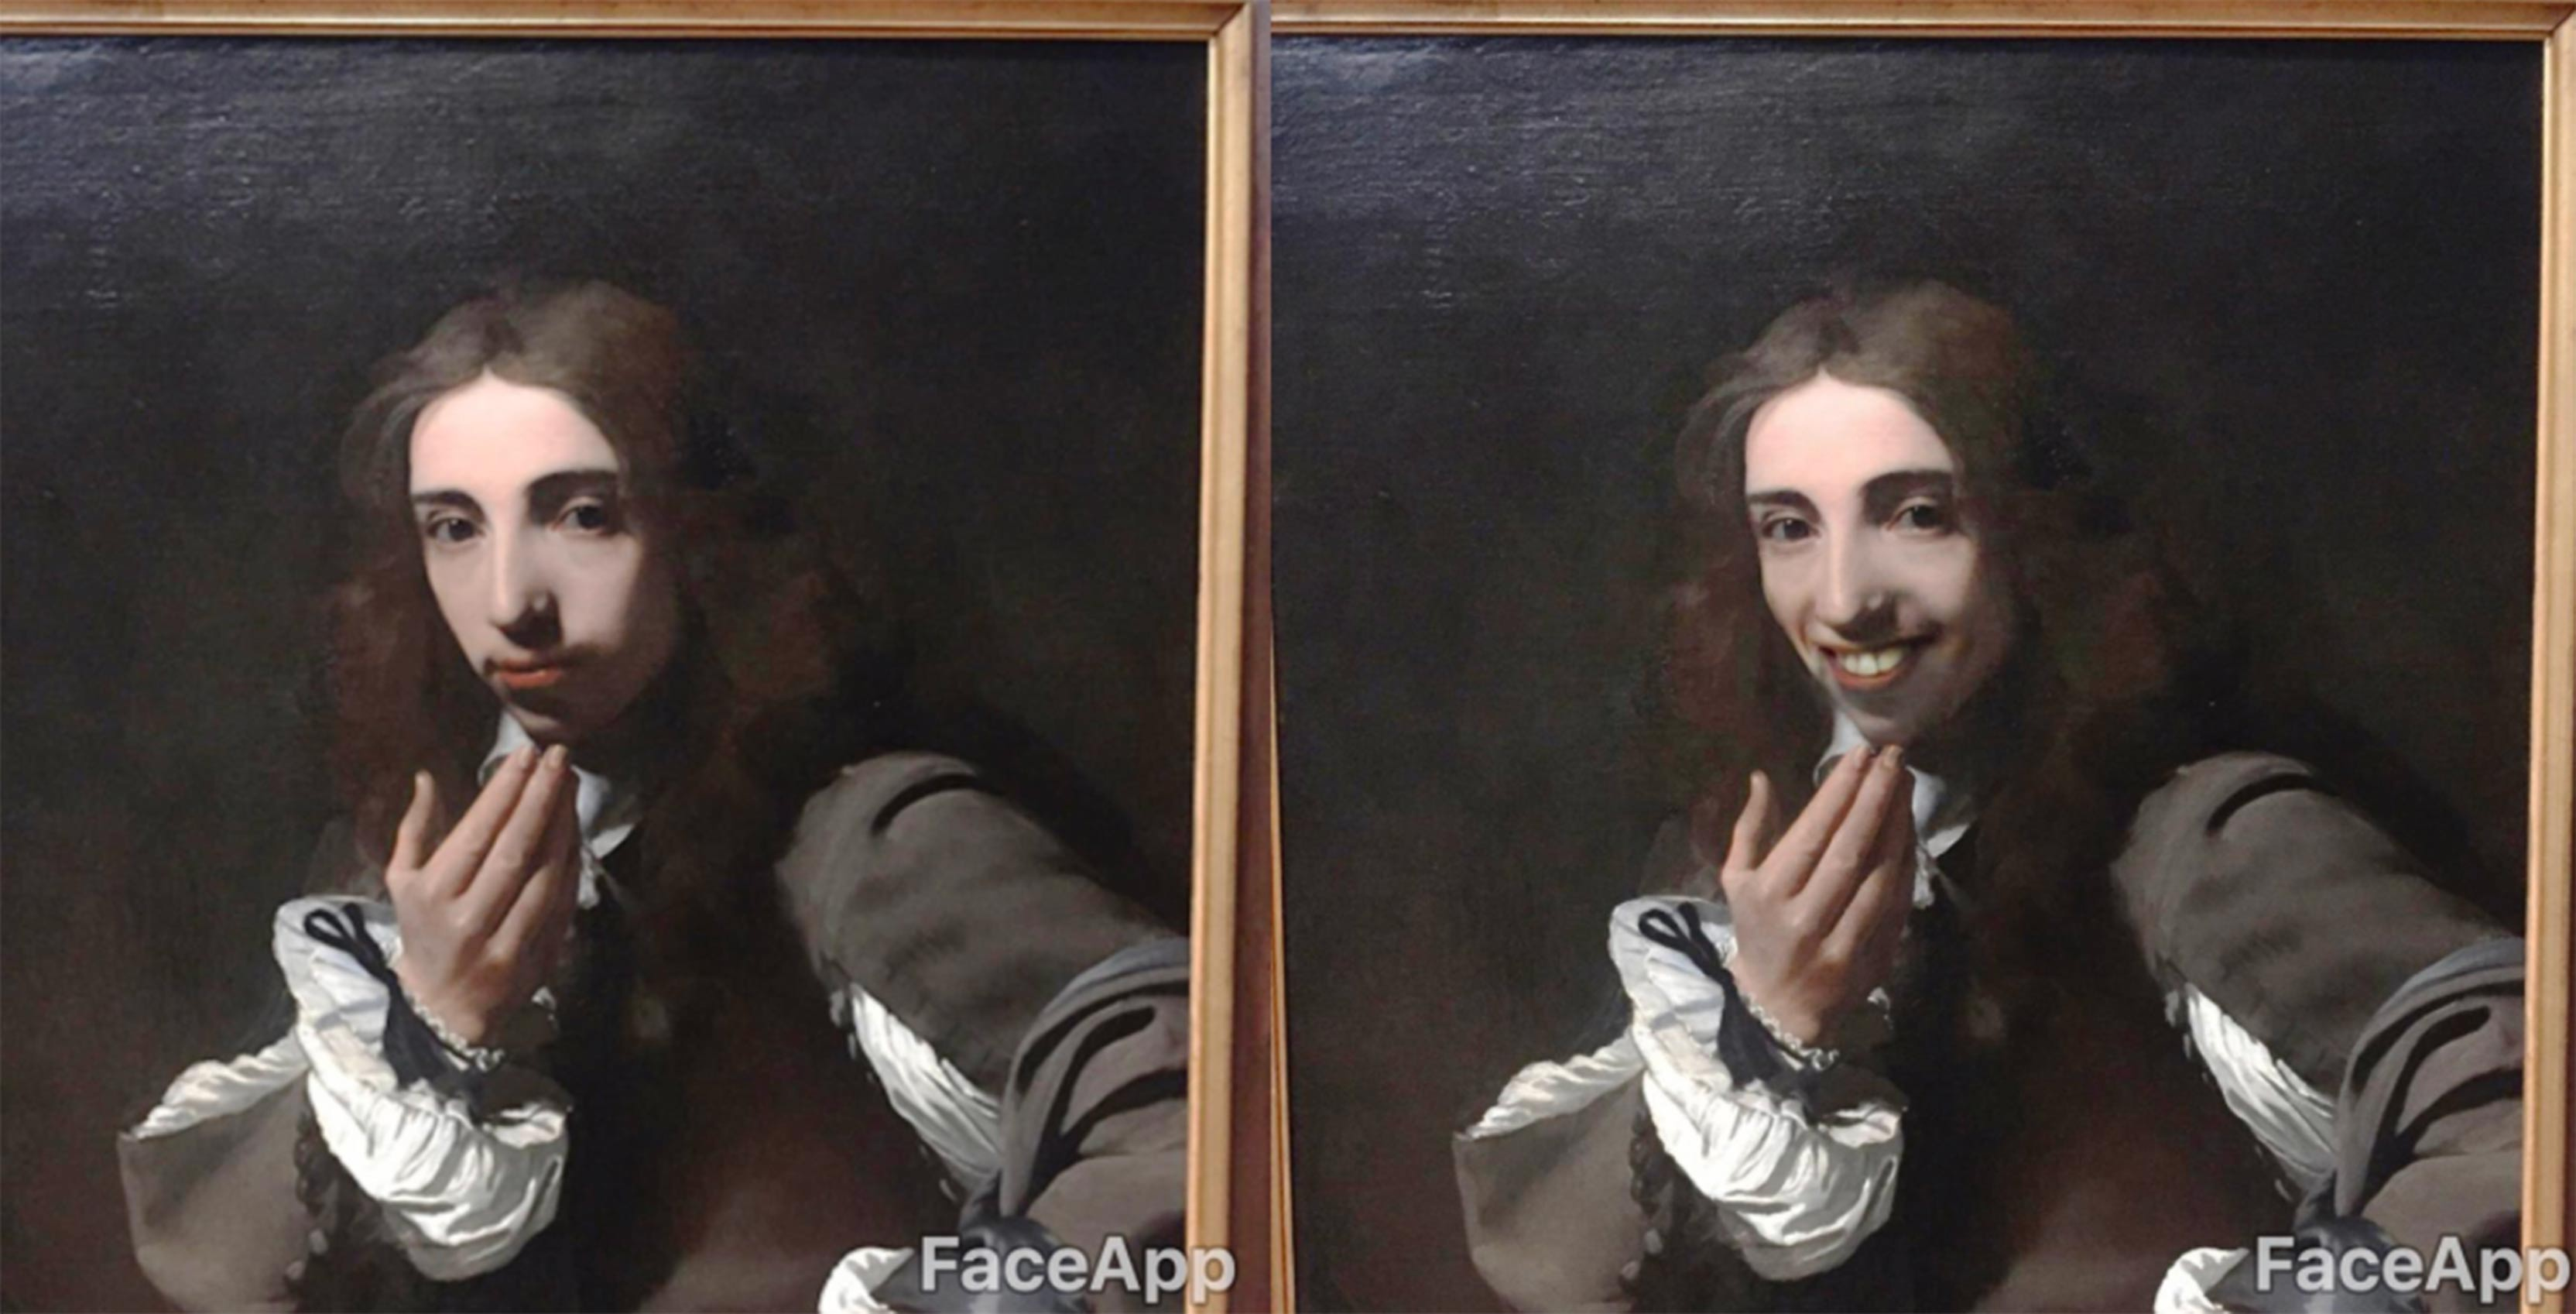 FaceApp transformation of Rembrandt painting